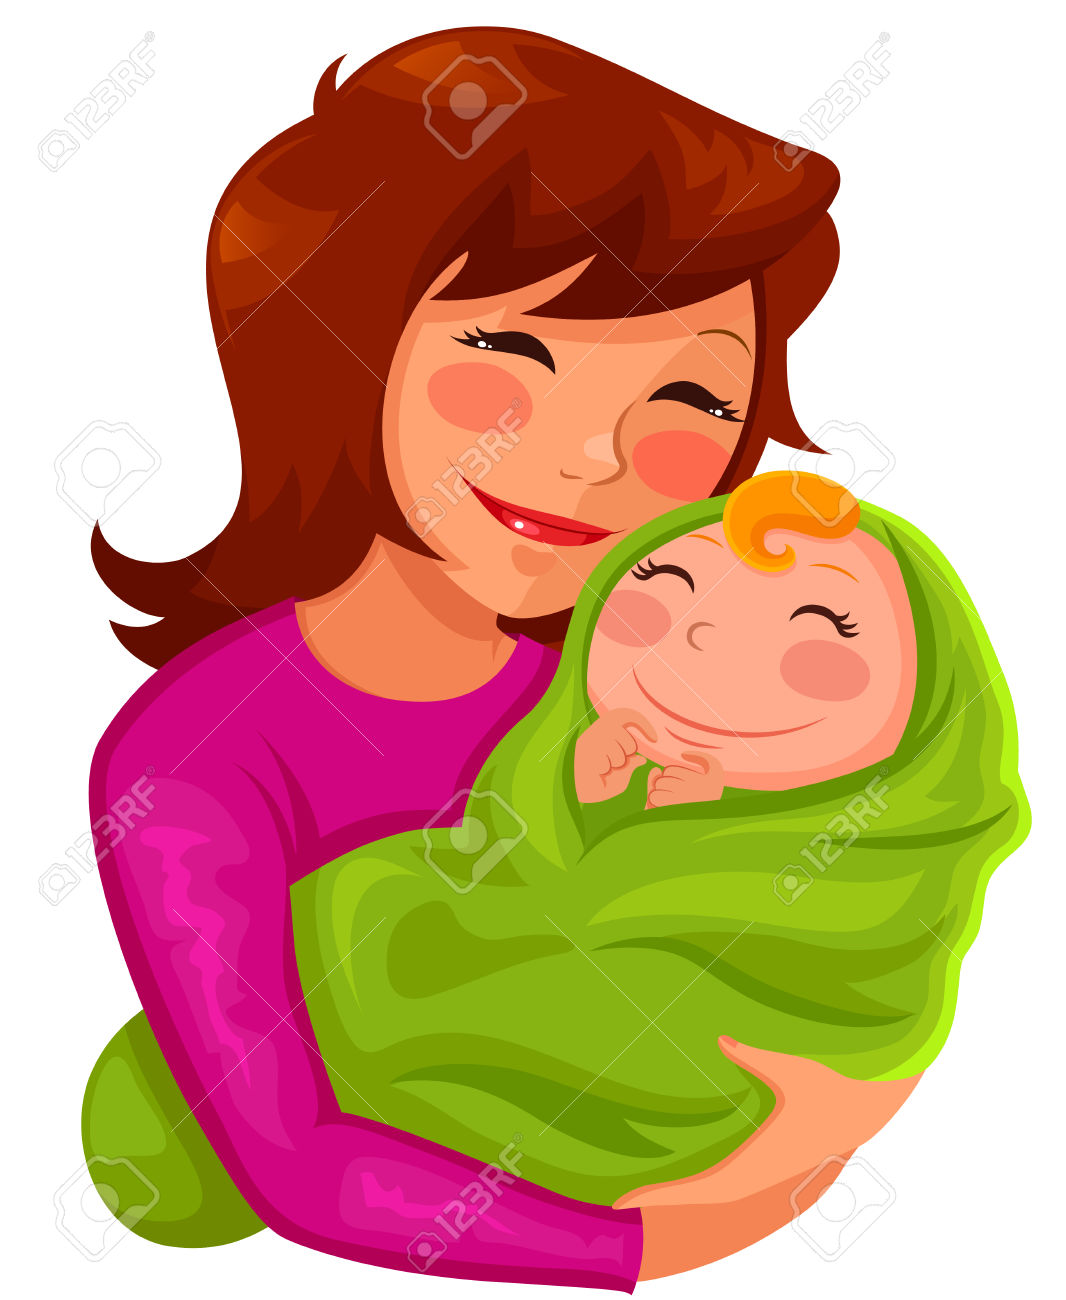 Clipart mama baby girl picture royalty free stock Happy Young Mother Hugging Her Baby Royalty Free Cliparts, Vectors ... picture royalty free stock